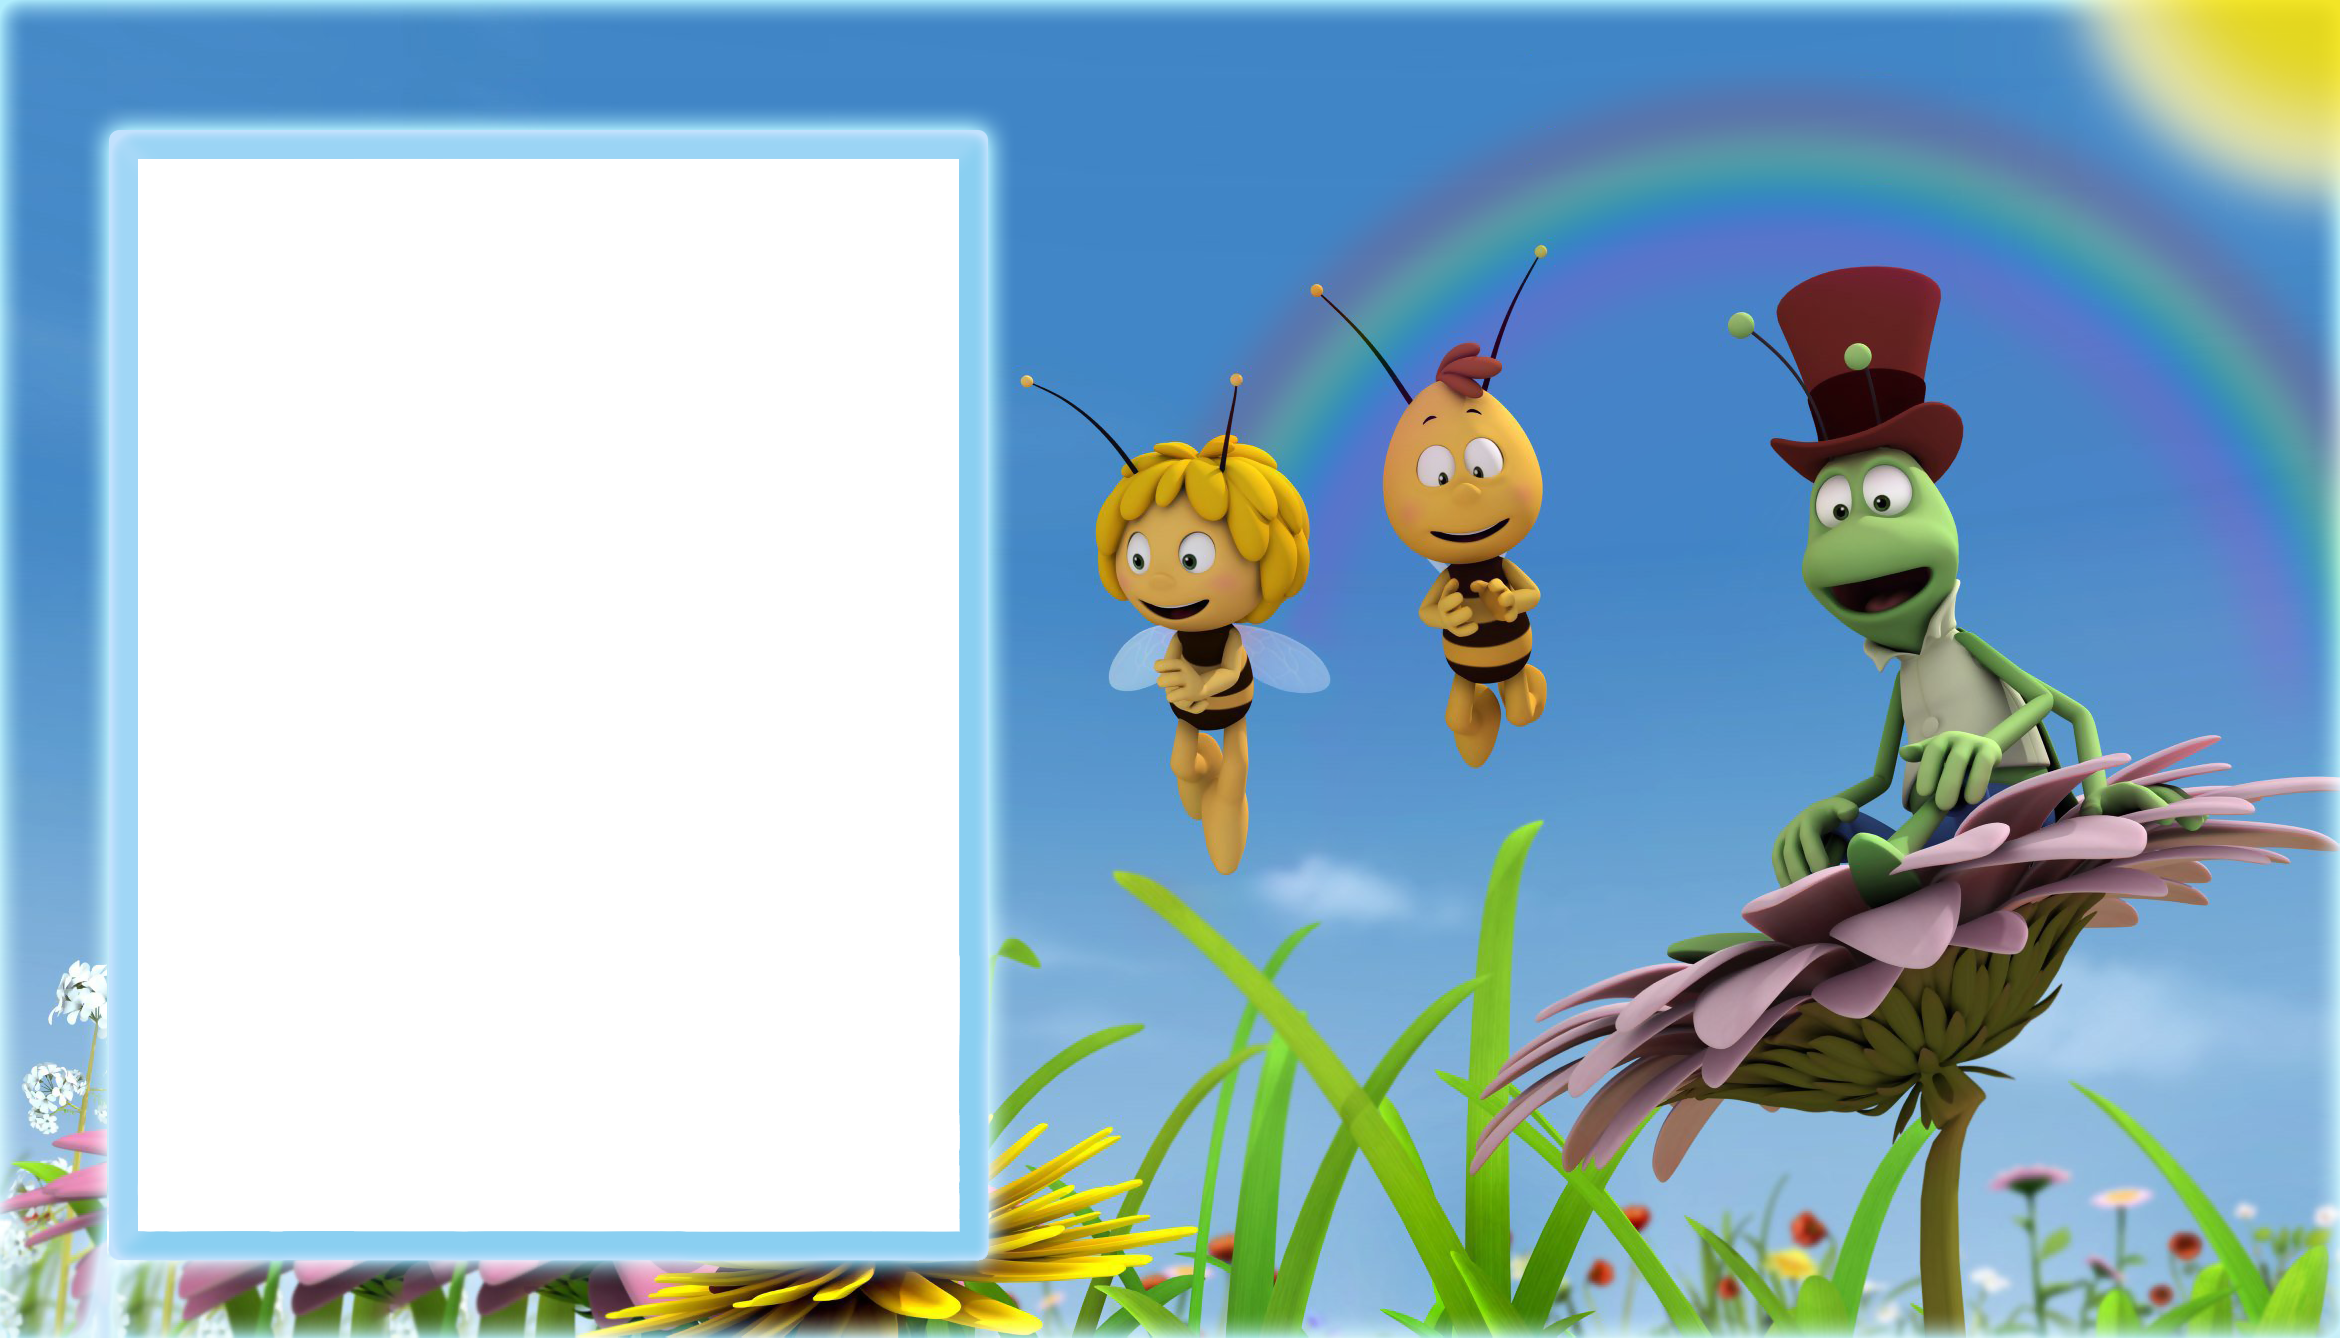 Bee clipart maya Frame full High the Gallery